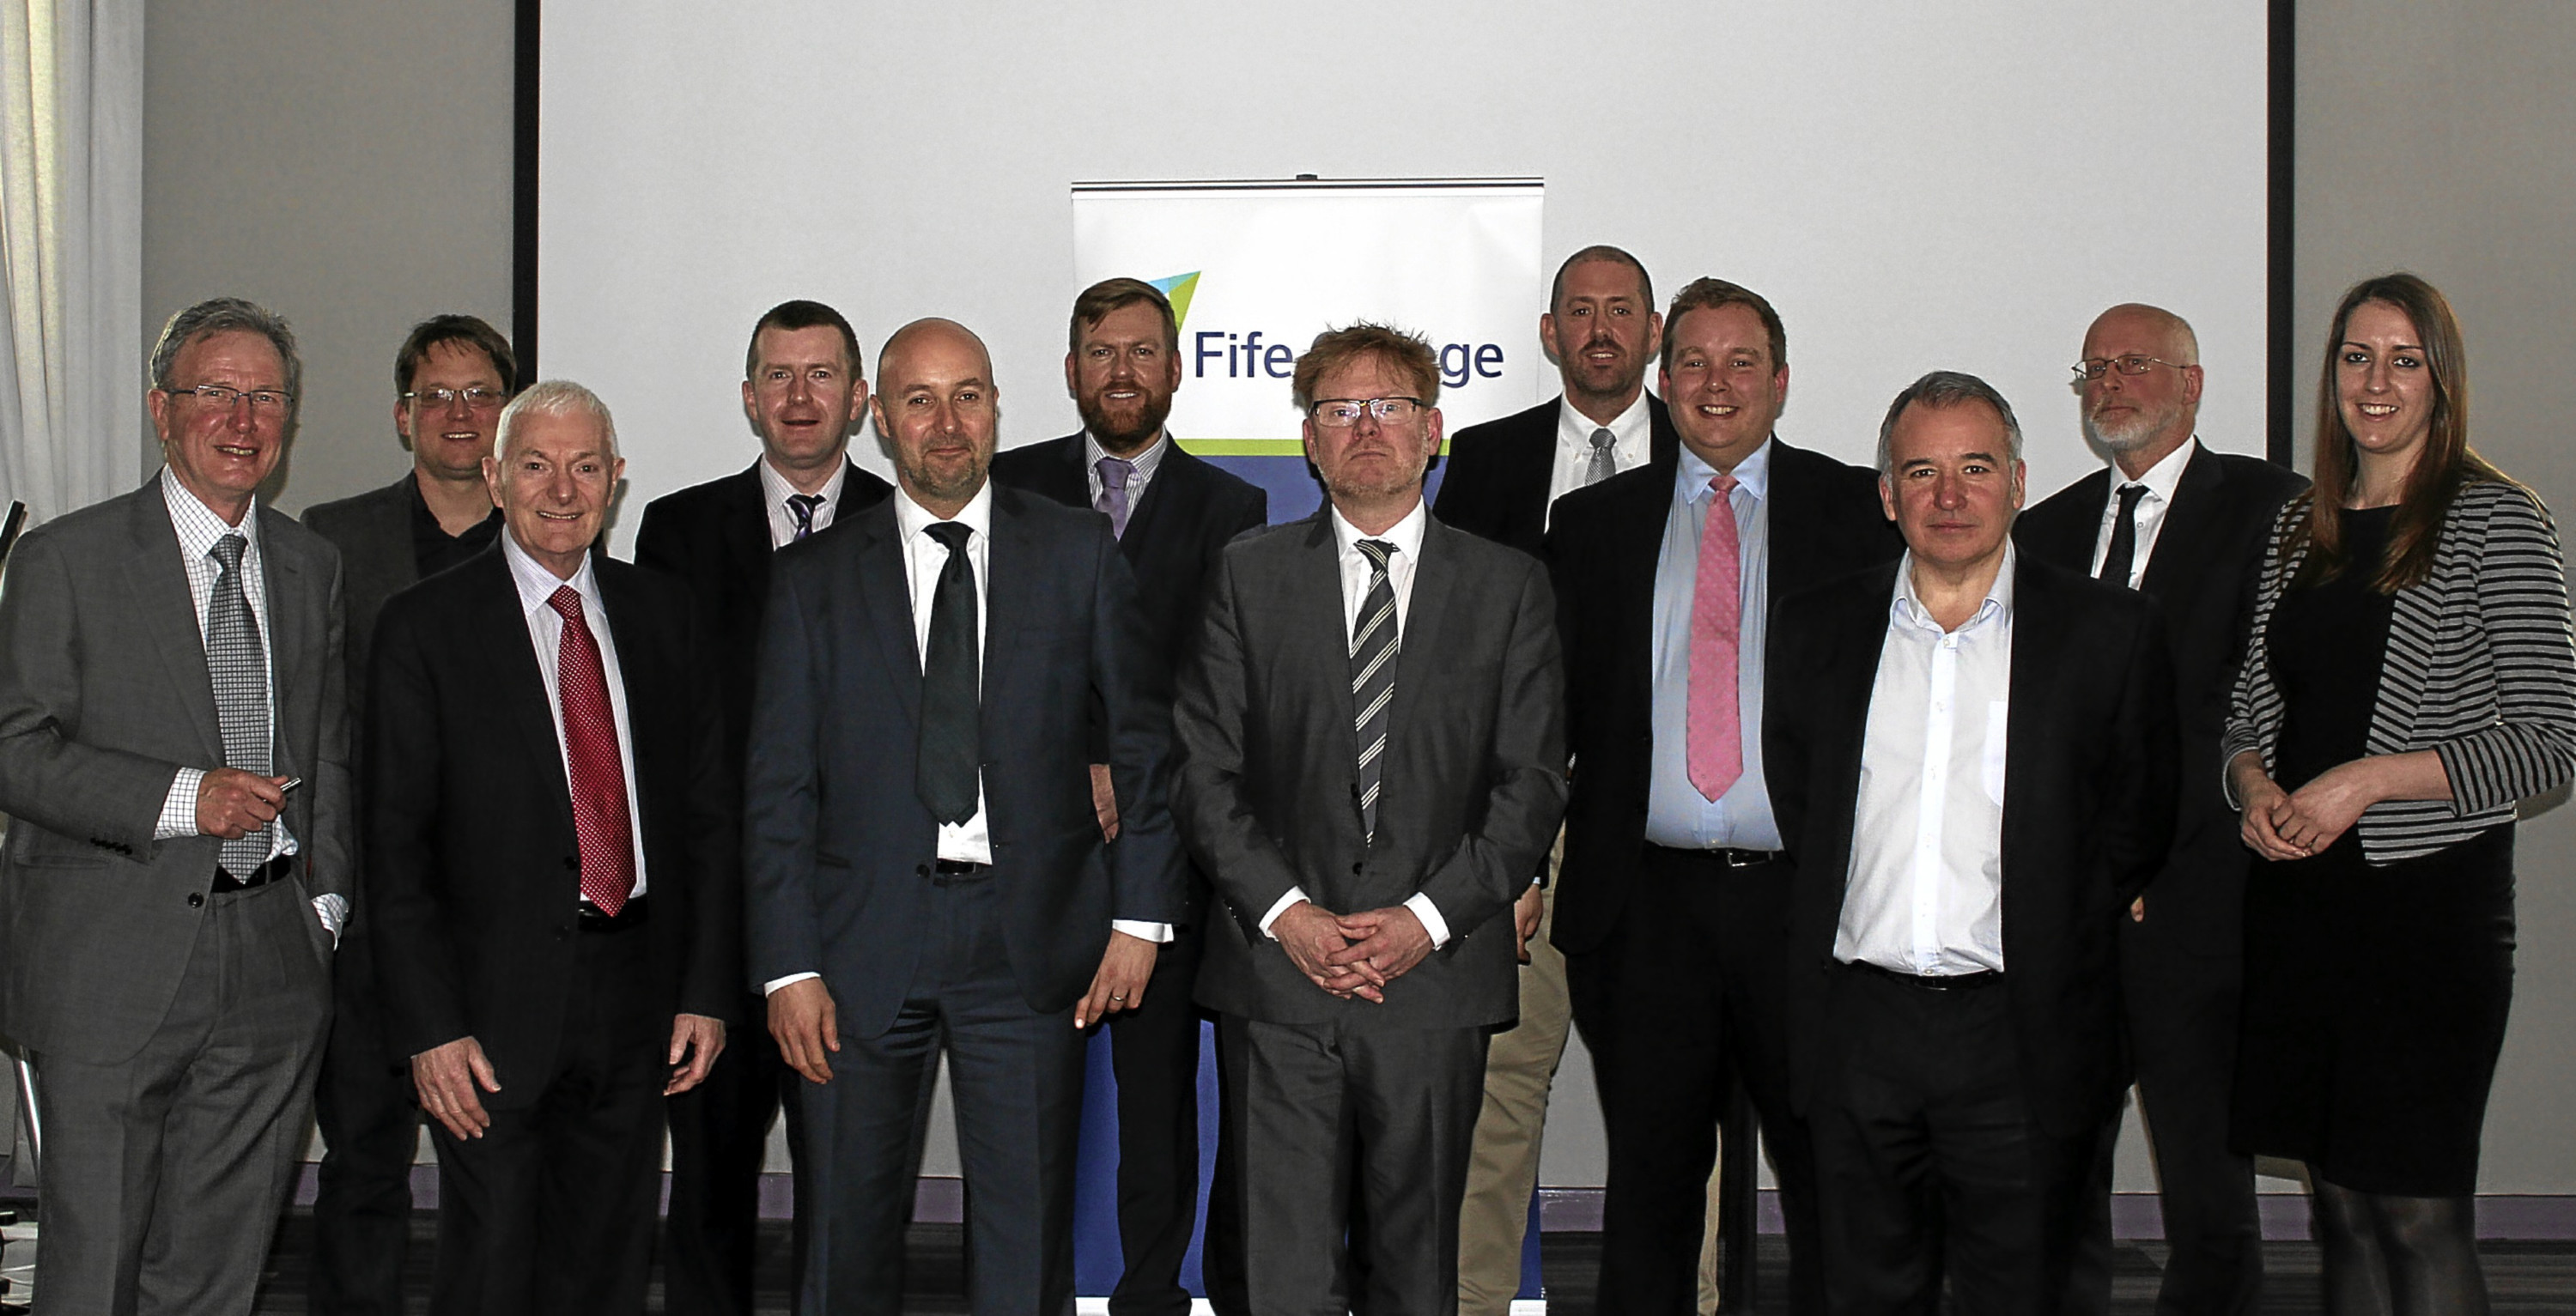 Fife college team behind new campus